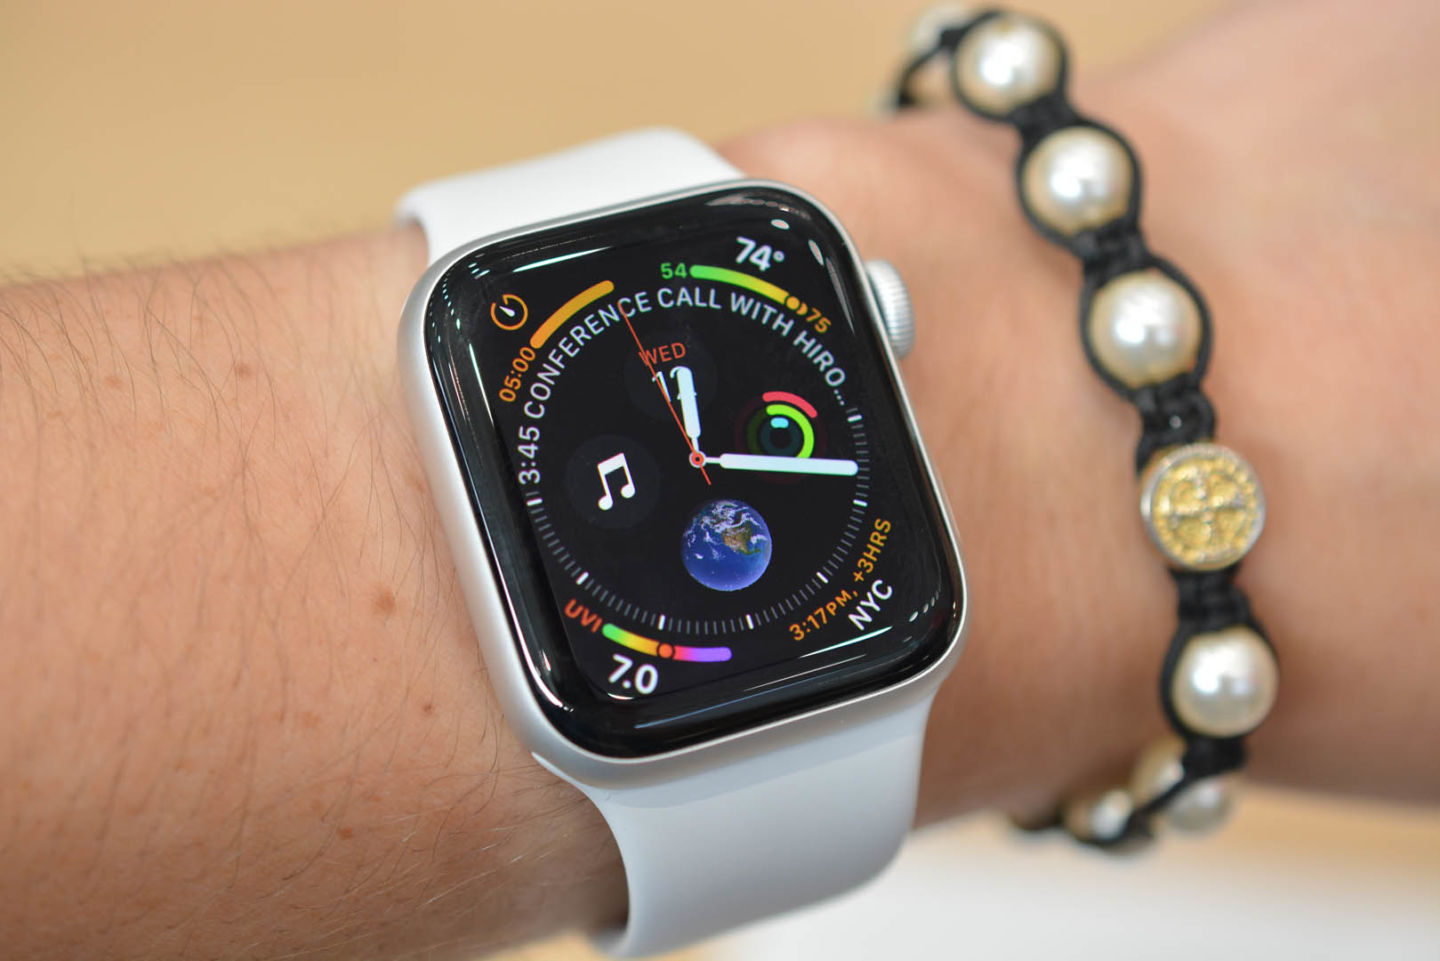 Apple Watch Series 4 hands on Sparking envy in current Apple Watch owners2018/19 By PakUrduWorld